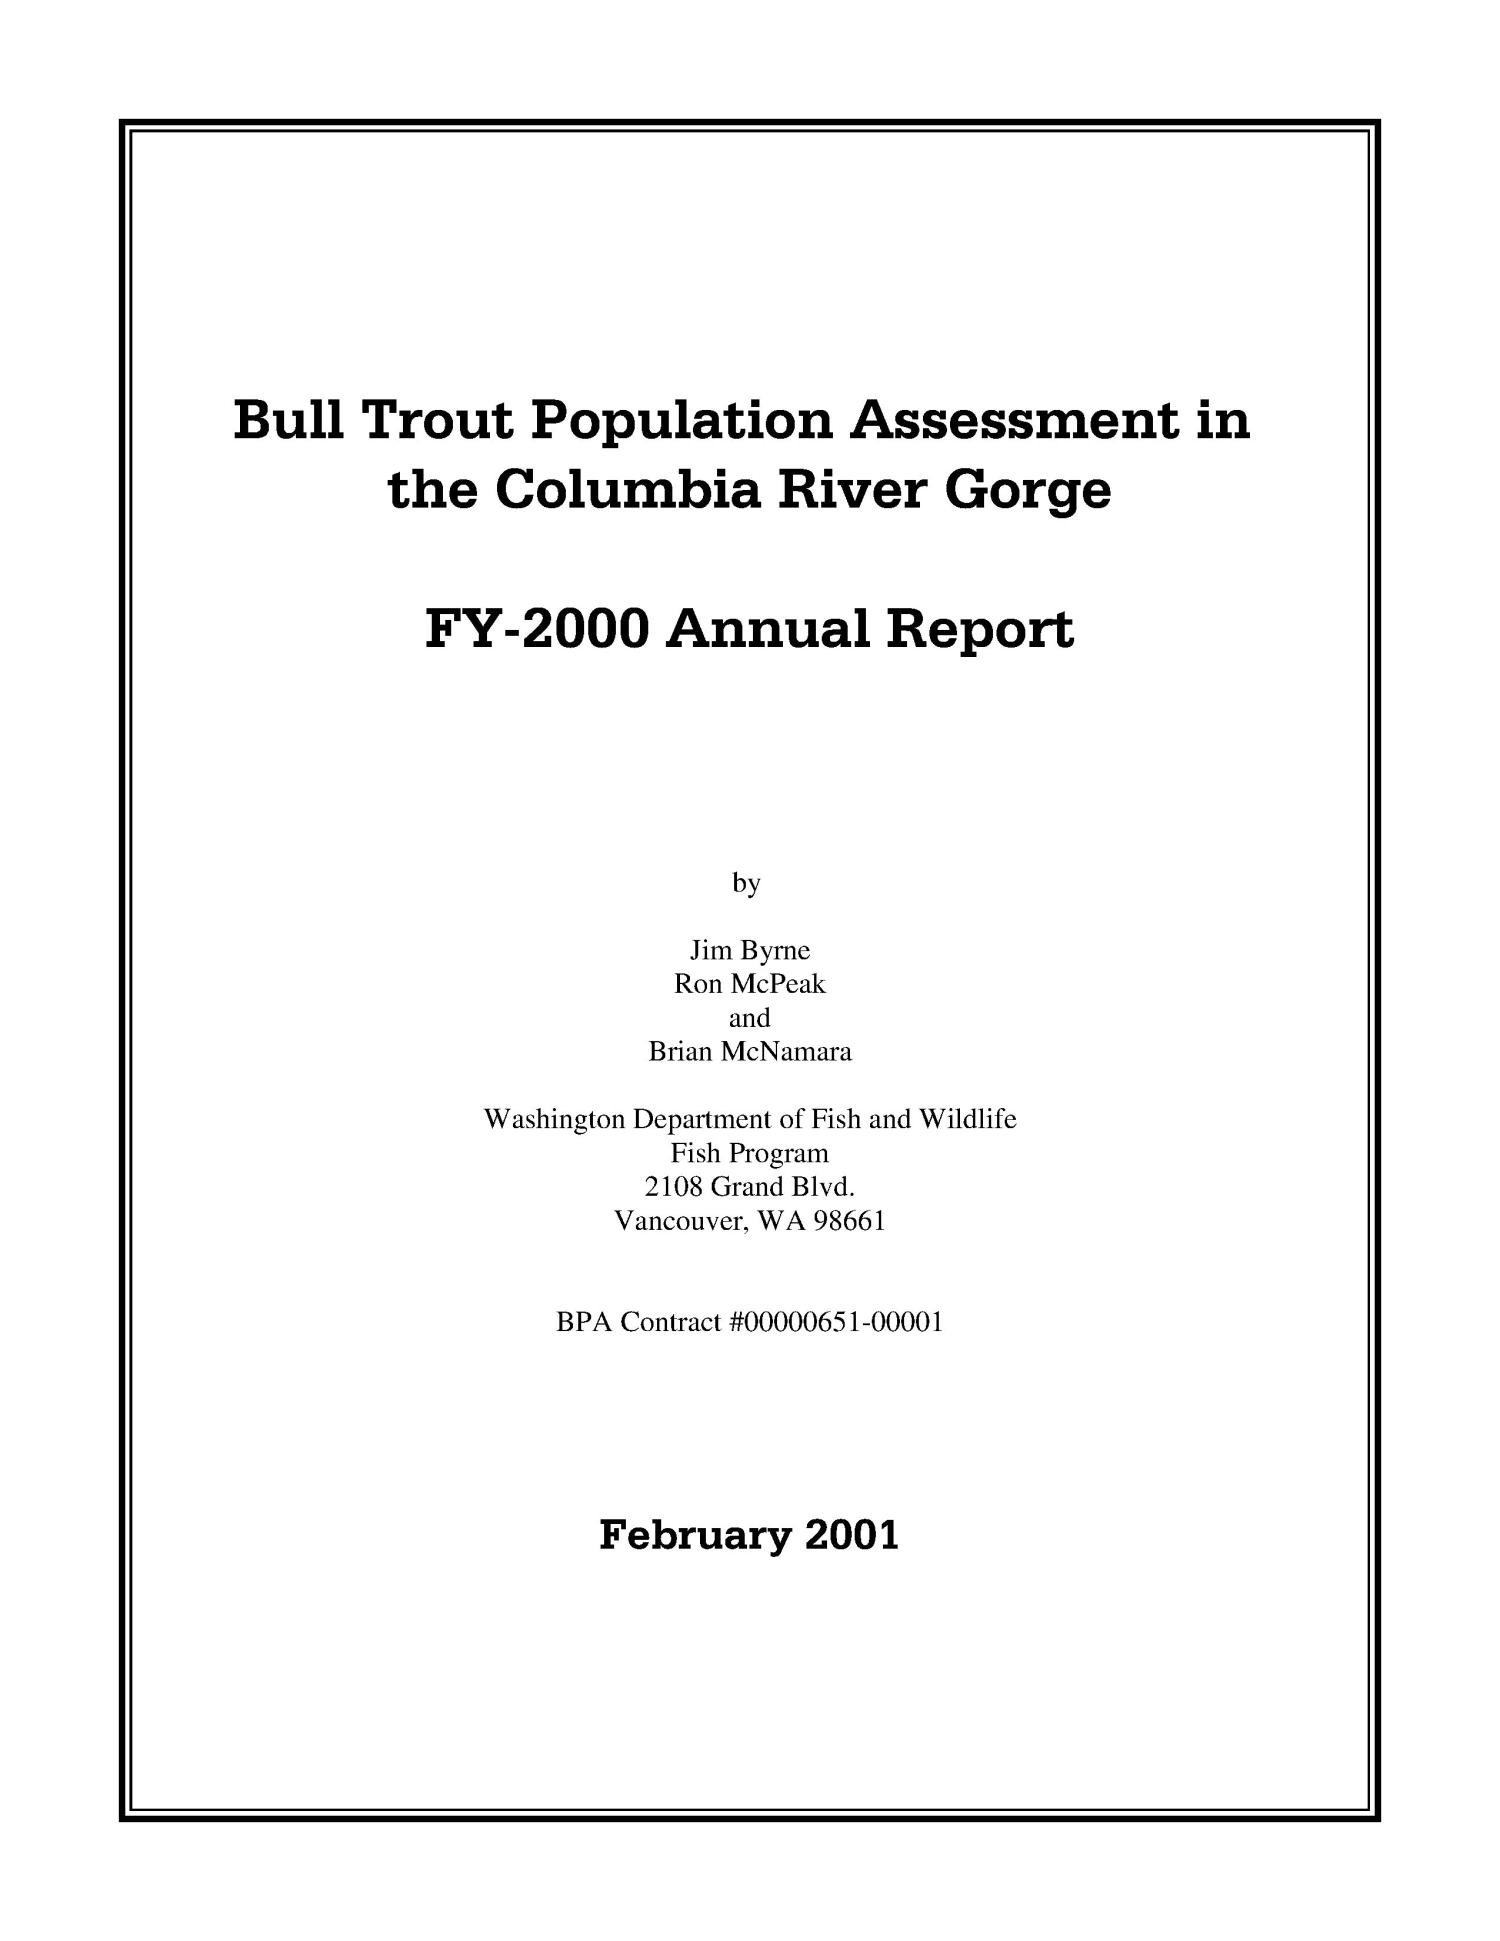 Bull Trout Population Assessment in the Columbia River Gorge : Annual Report 2000.                                                                                                      [Sequence #]: 3 of 85